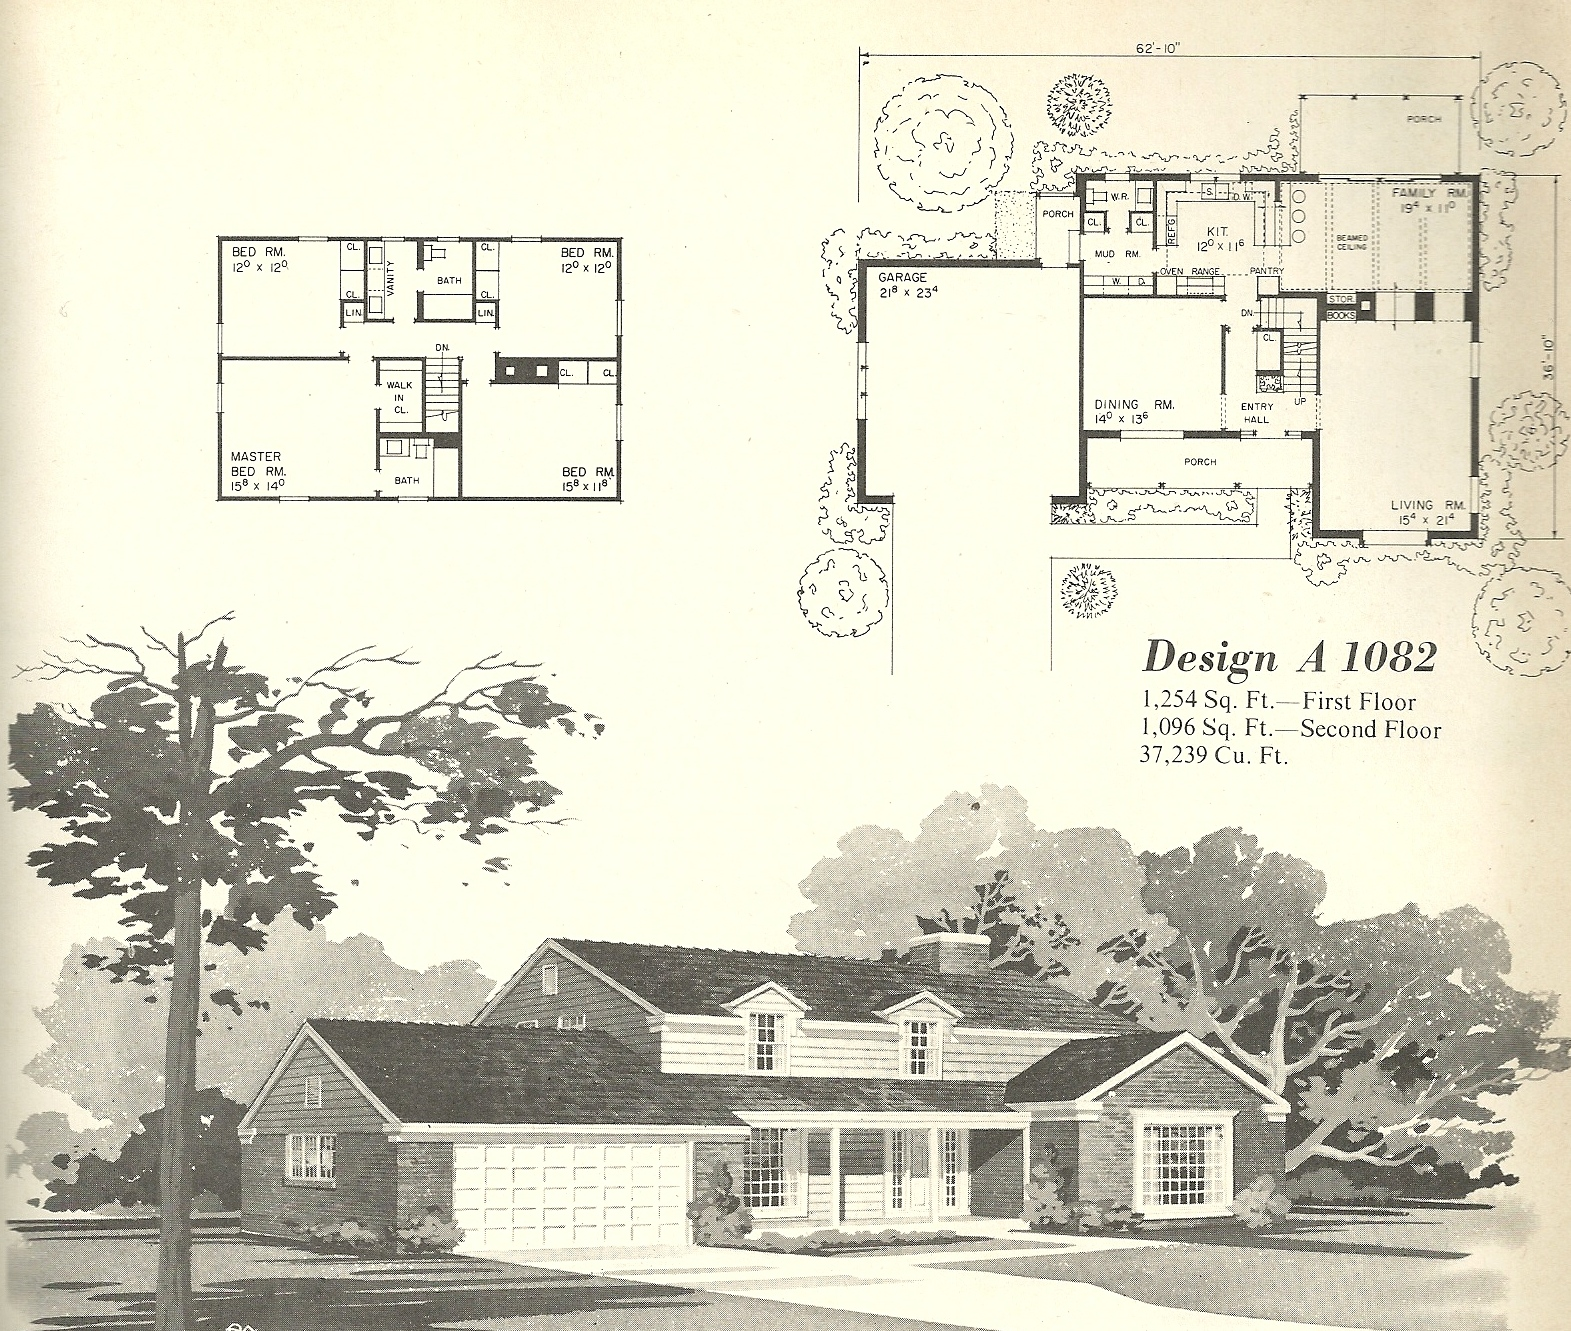 Vintage House Plans s  Farmhouse Variations     Antique    vintage house plans  mid century house plans  mid century homes